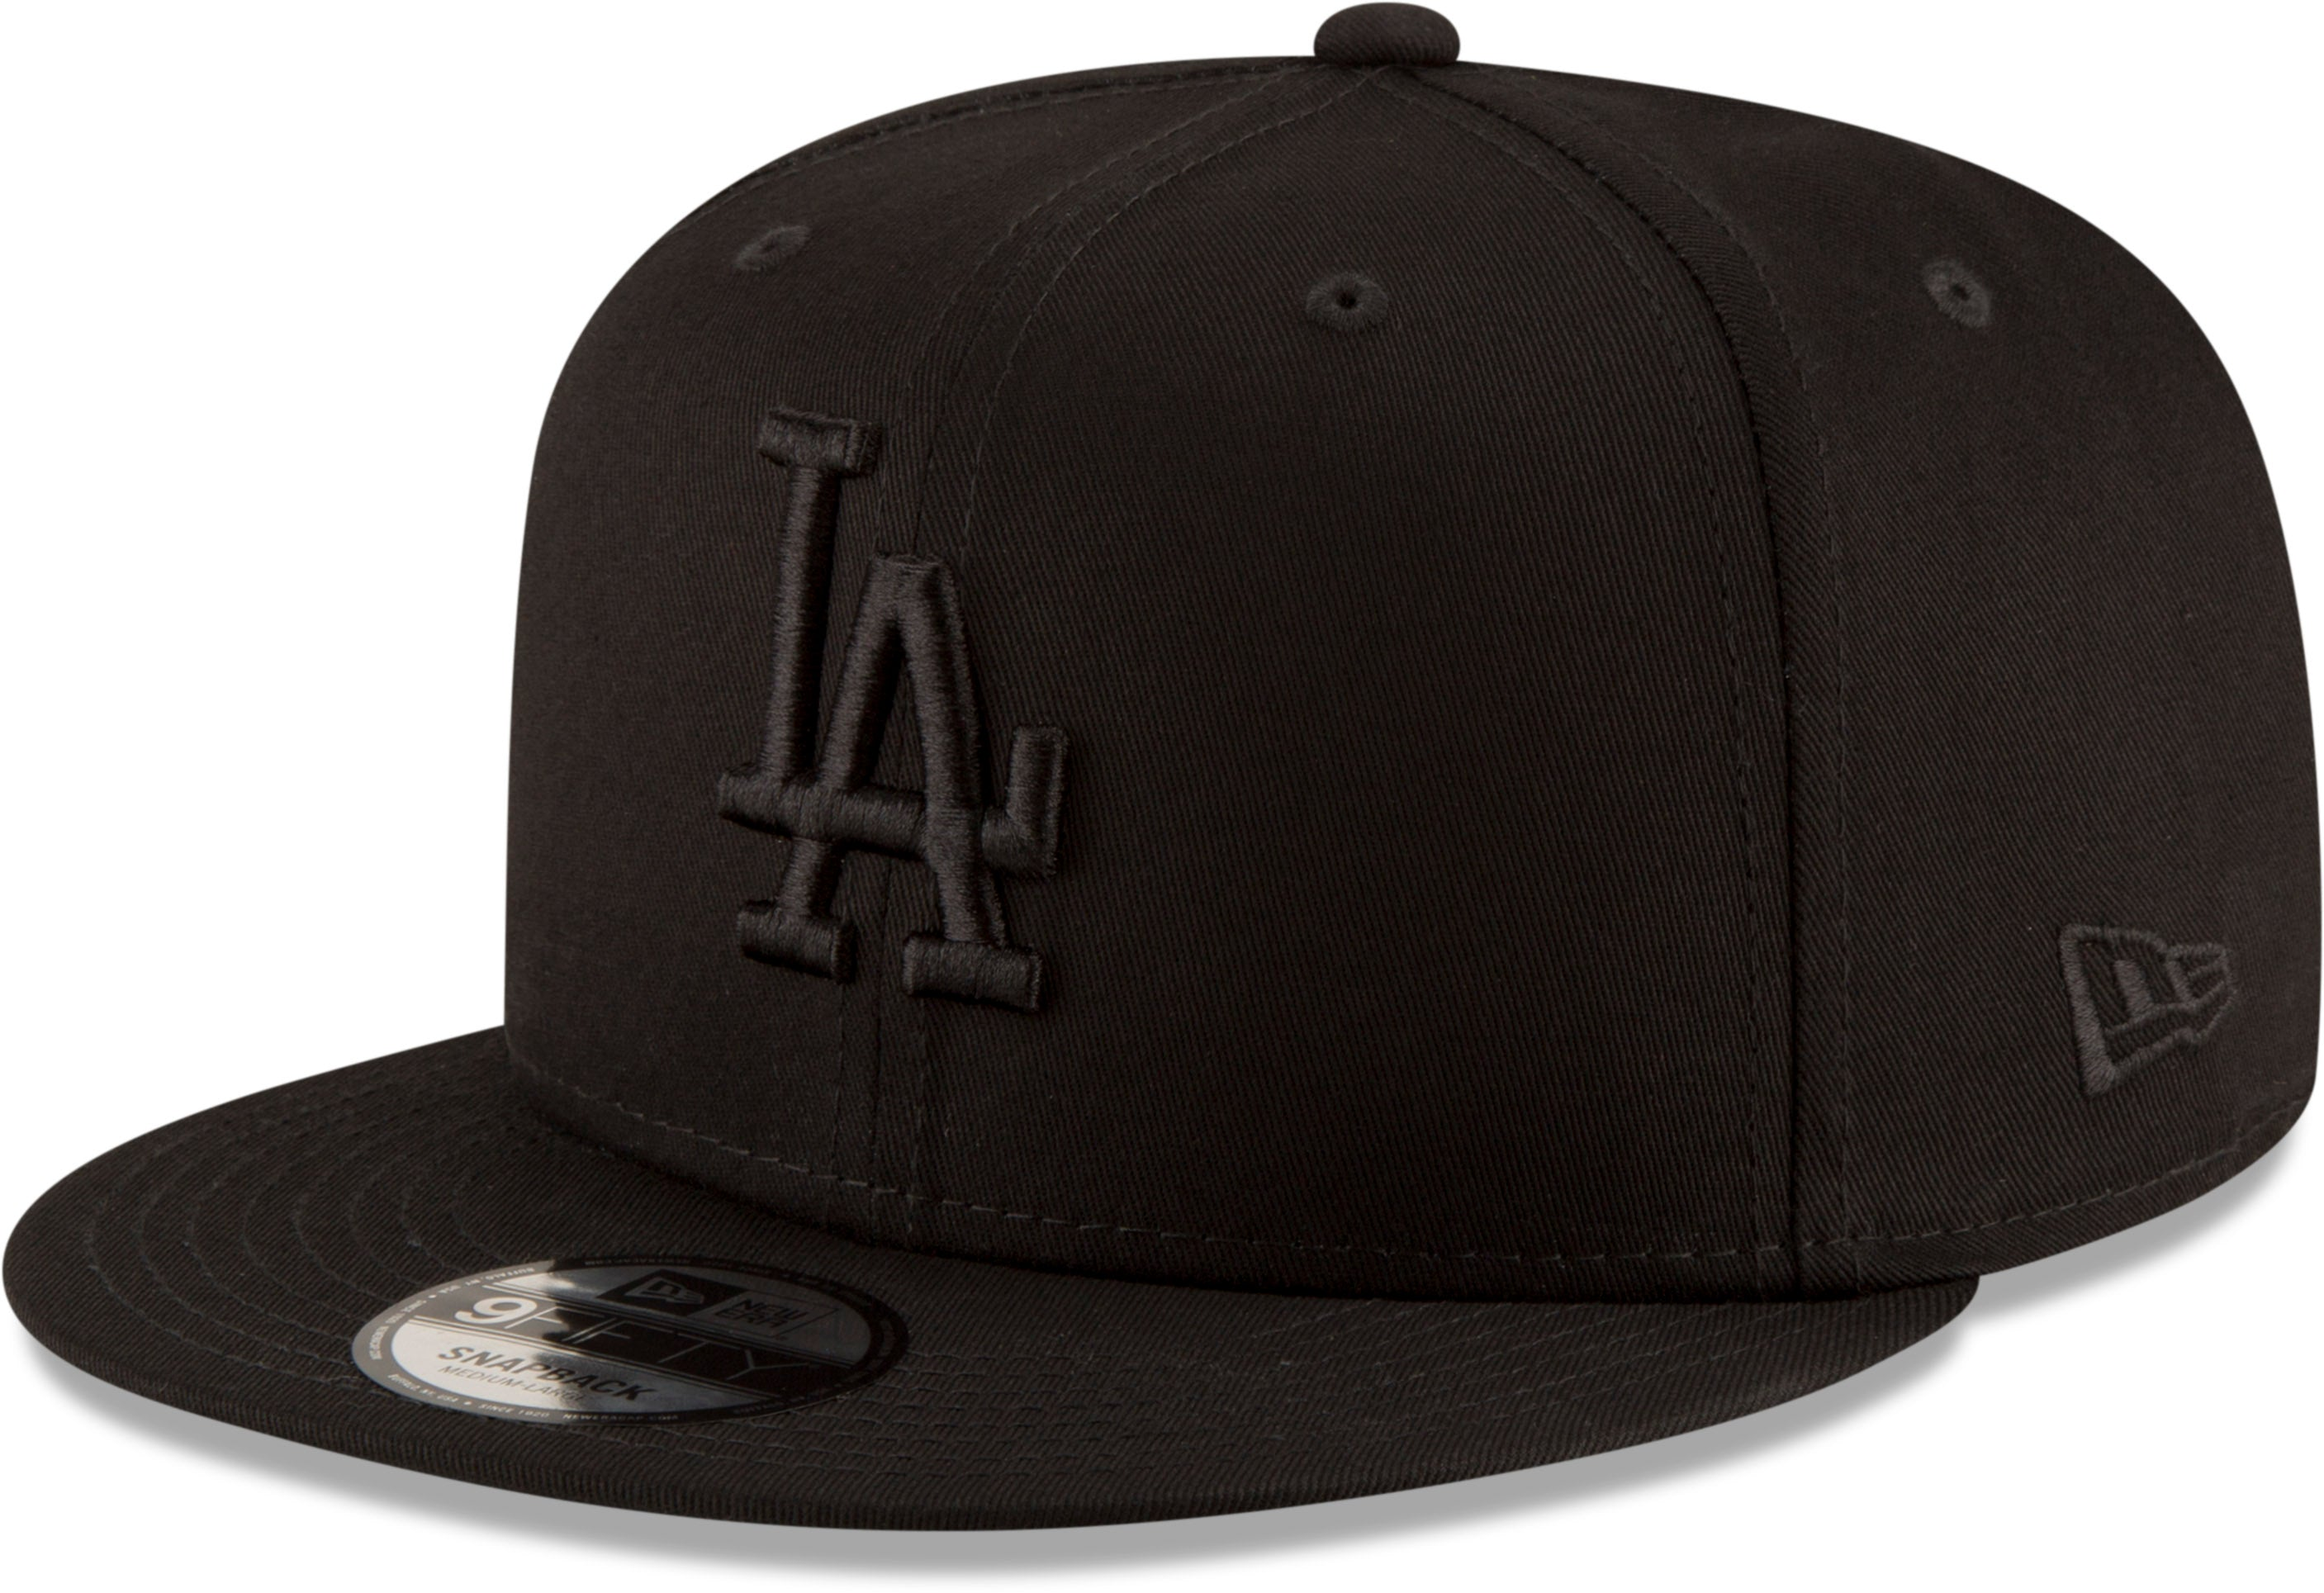 LA Dodgers New Era 950 League Essential All Black Snapback Baseball Cap -  pumpheadgear 2b1b66717379